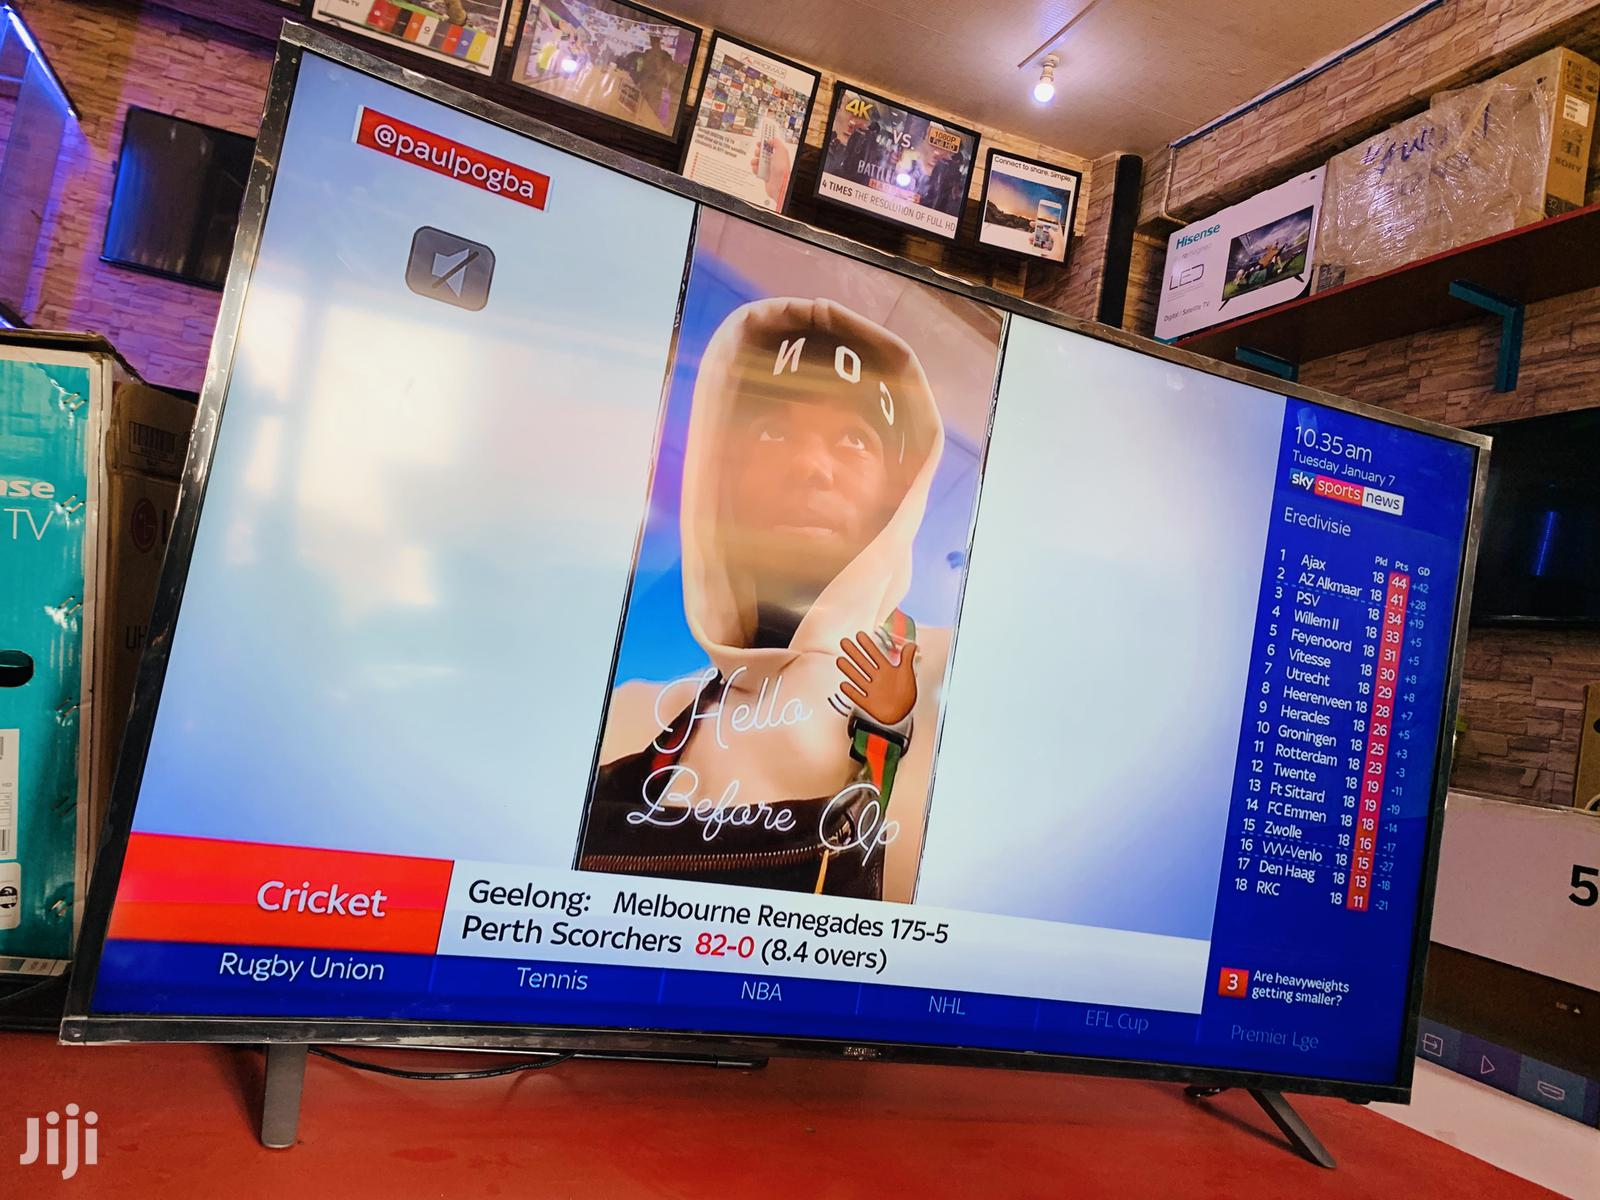 Brand New Samsung Curved Tv 55 Inches | TV & DVD Equipment for sale in Kampala, Central Region, Uganda